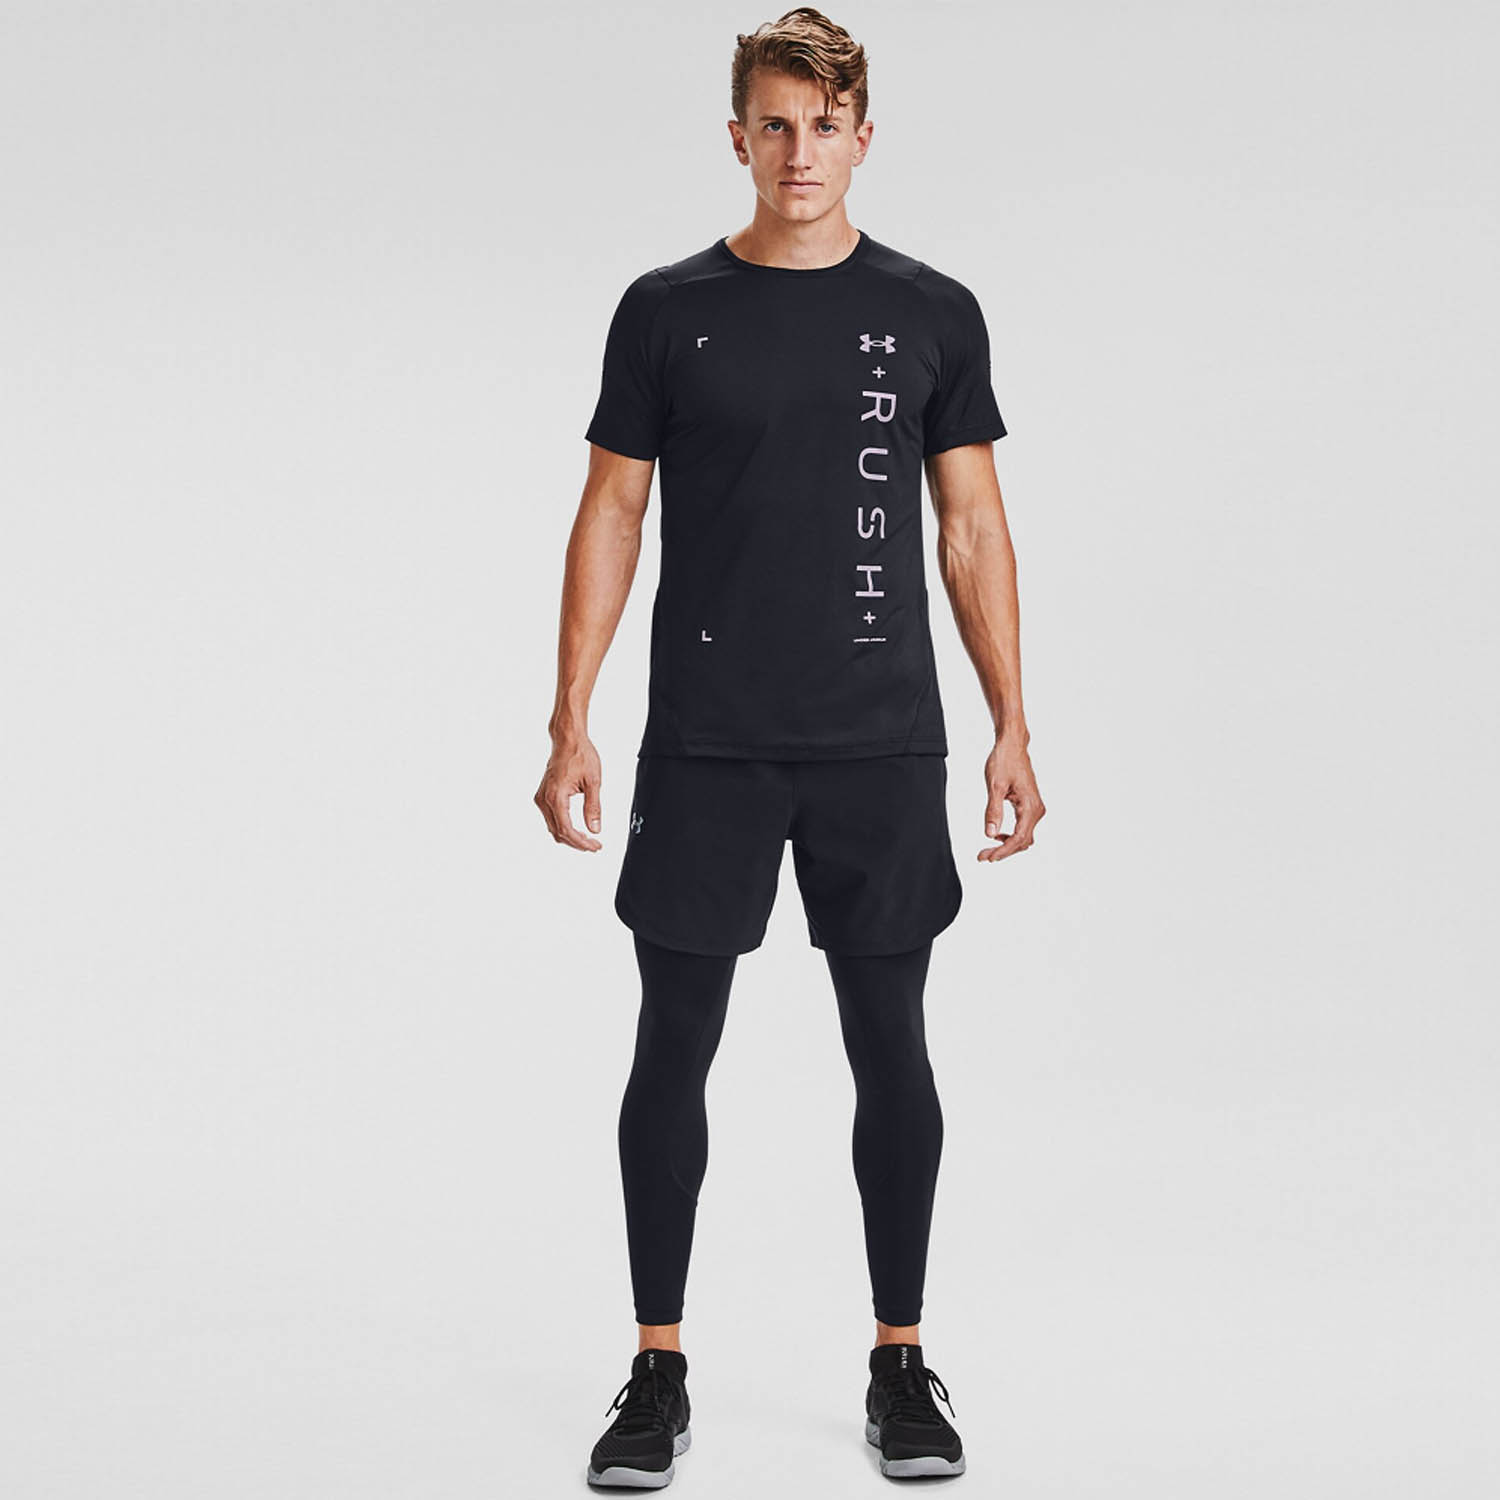 Under Armour Rush HeatGear 2.0 Graphic T-Shirt - Black/Reflective